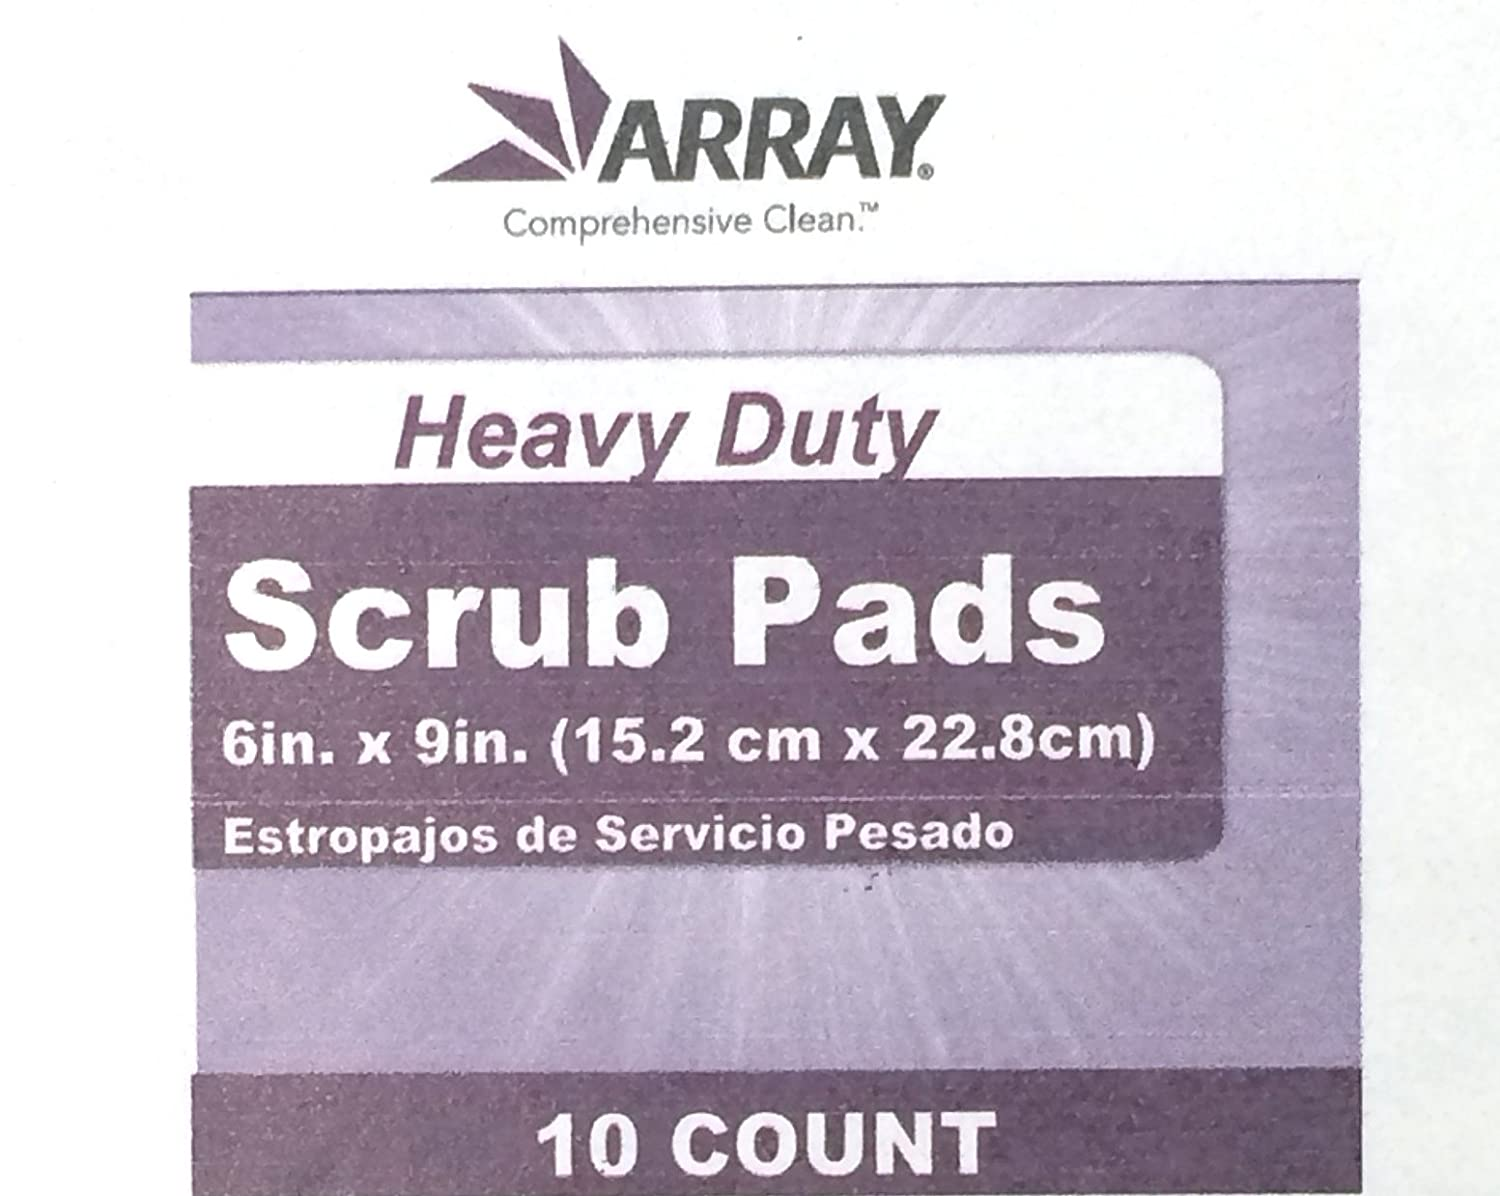 Amazon.com: Array Heavy Duty Scrub Pads, Dark Green, 6